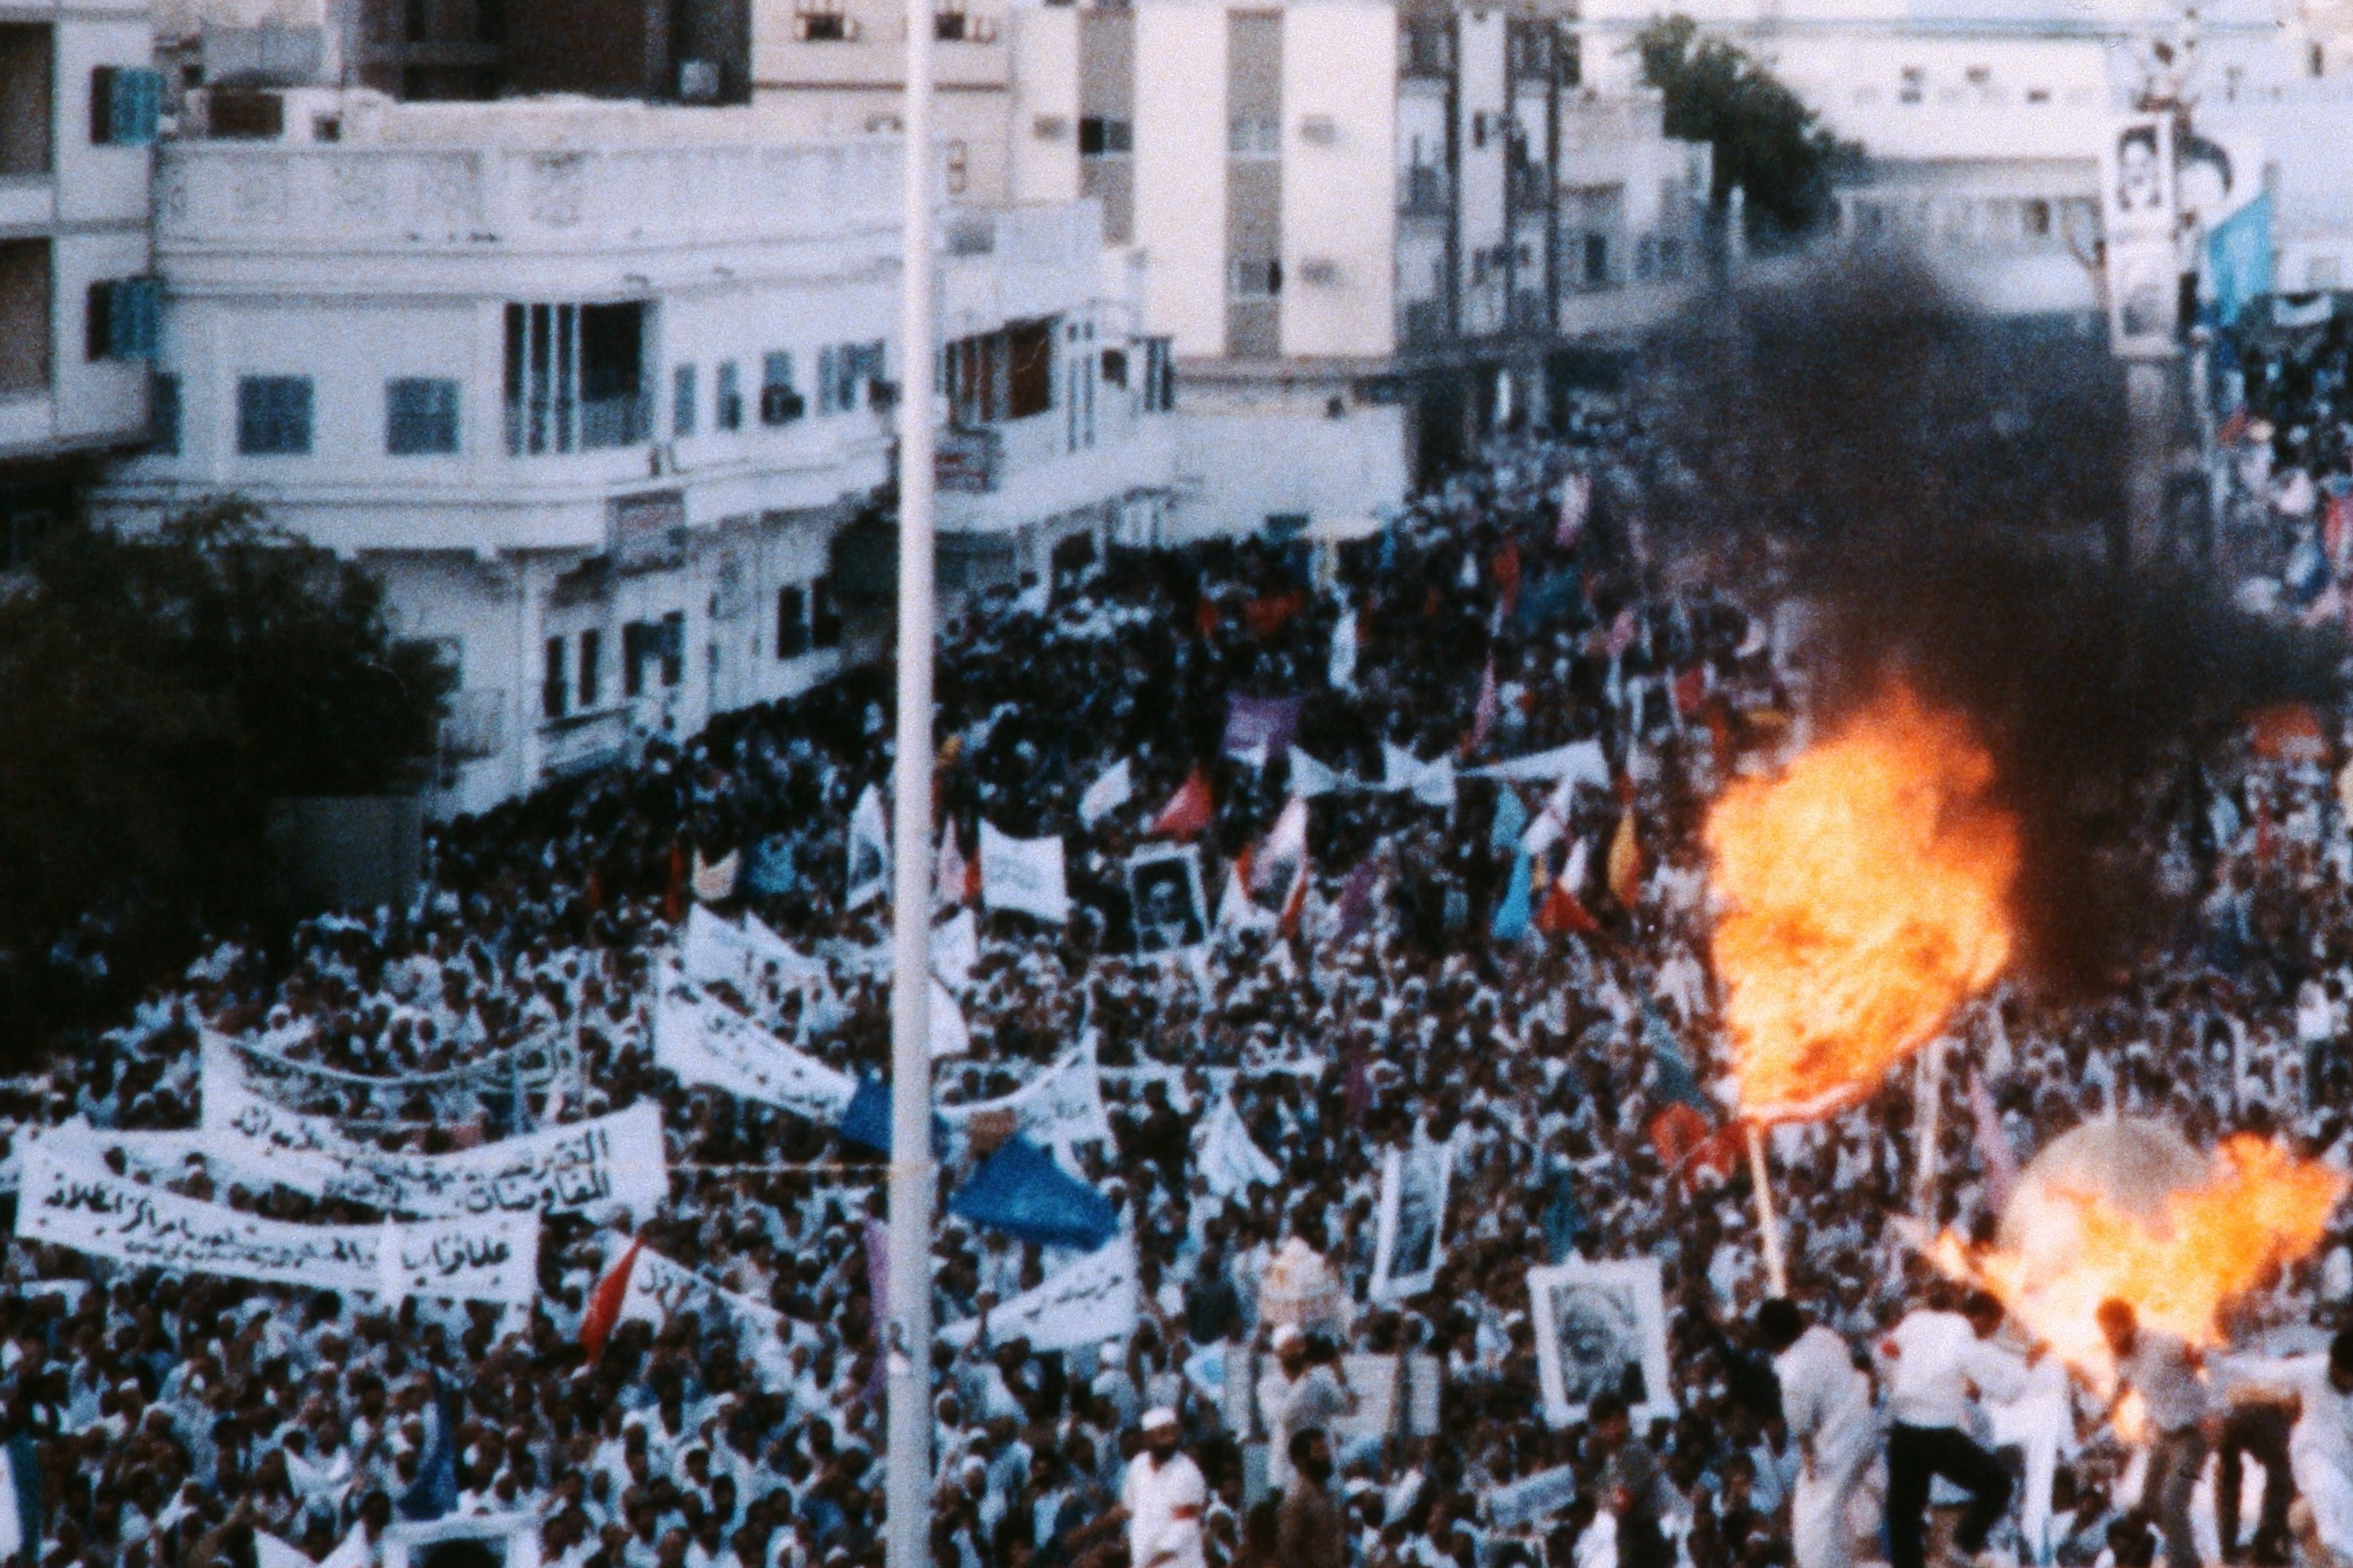 Iranian demonstrators clash during a rally protesting against the deployment of US Navy vessels in the Persian Gulf on August 02, 1987 in Mecca